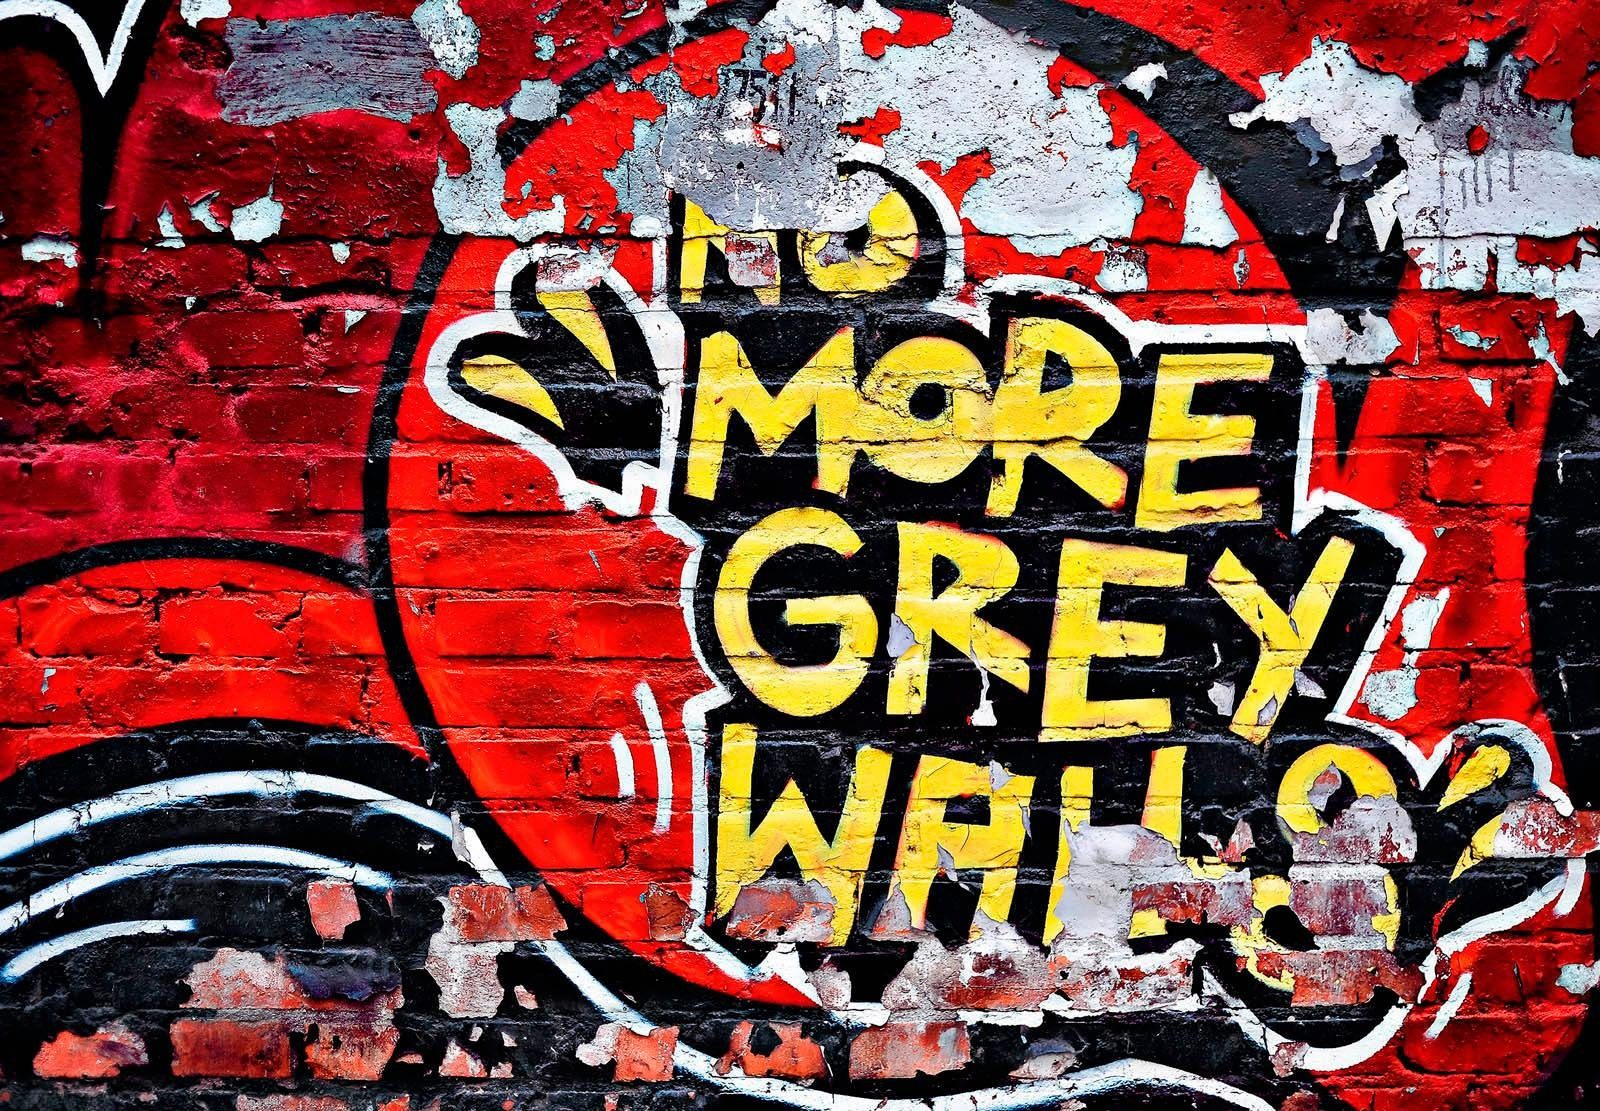 Fototapete »No More Grey Walls« 366/254 cm